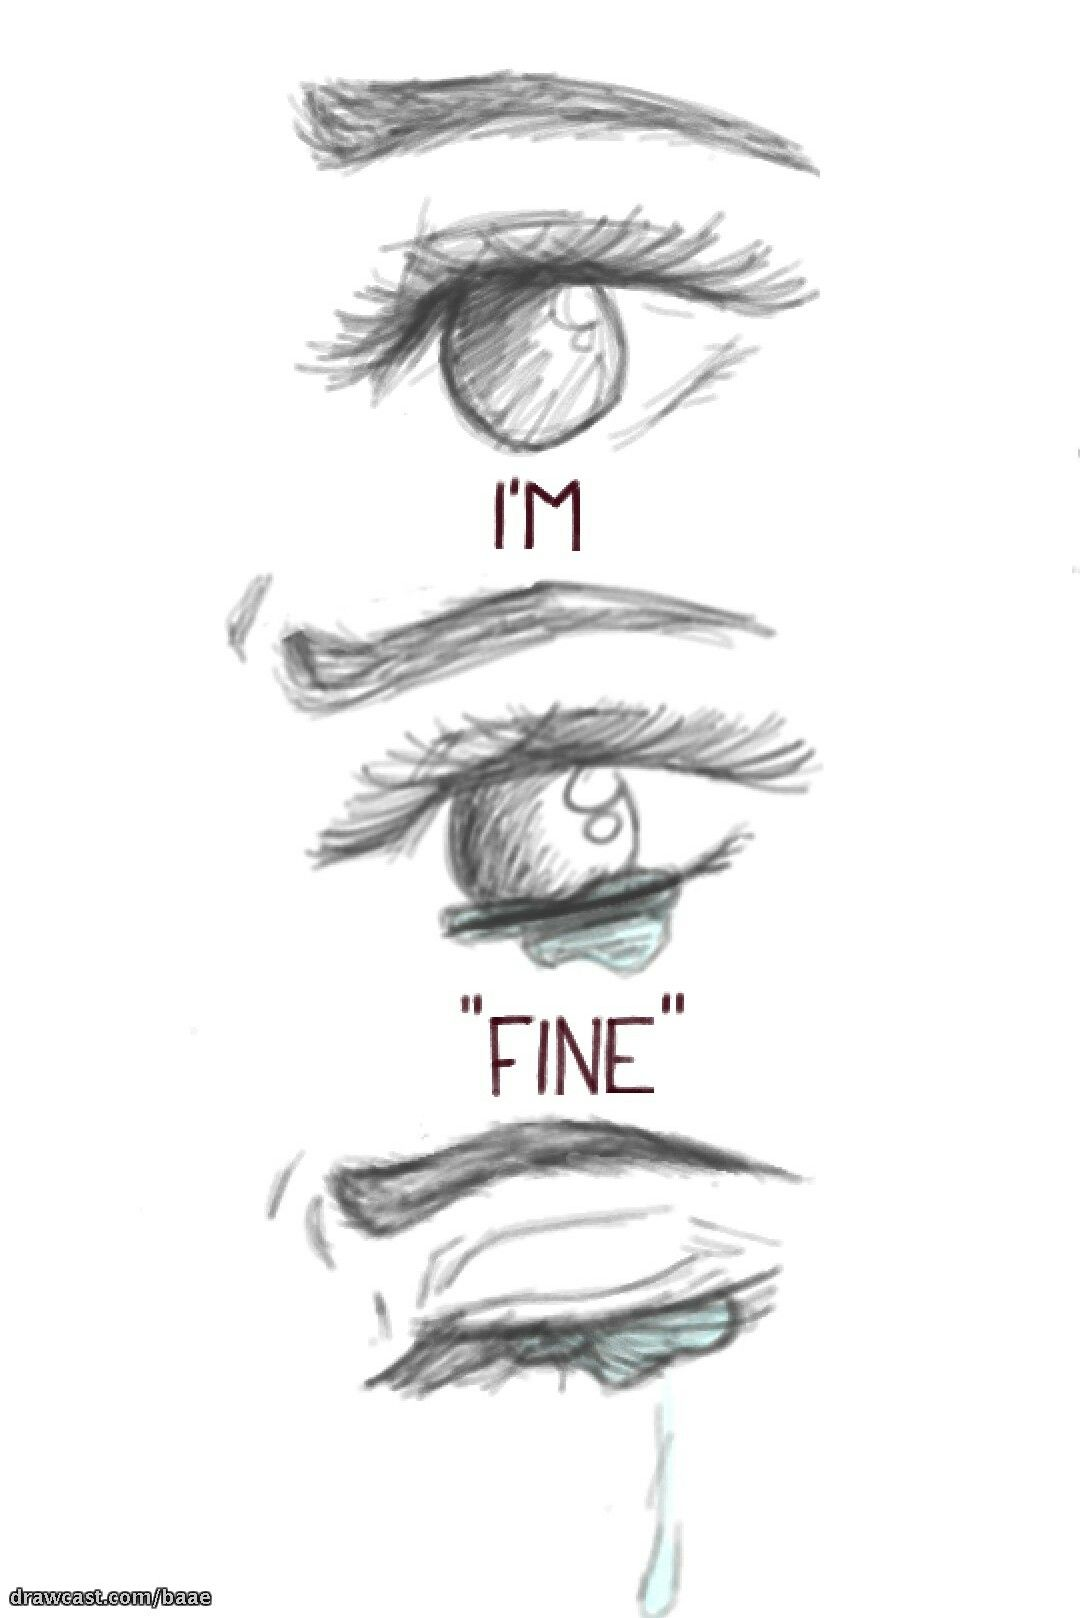 Just a vent drawing of mine sad drawings cute drawings of people deep